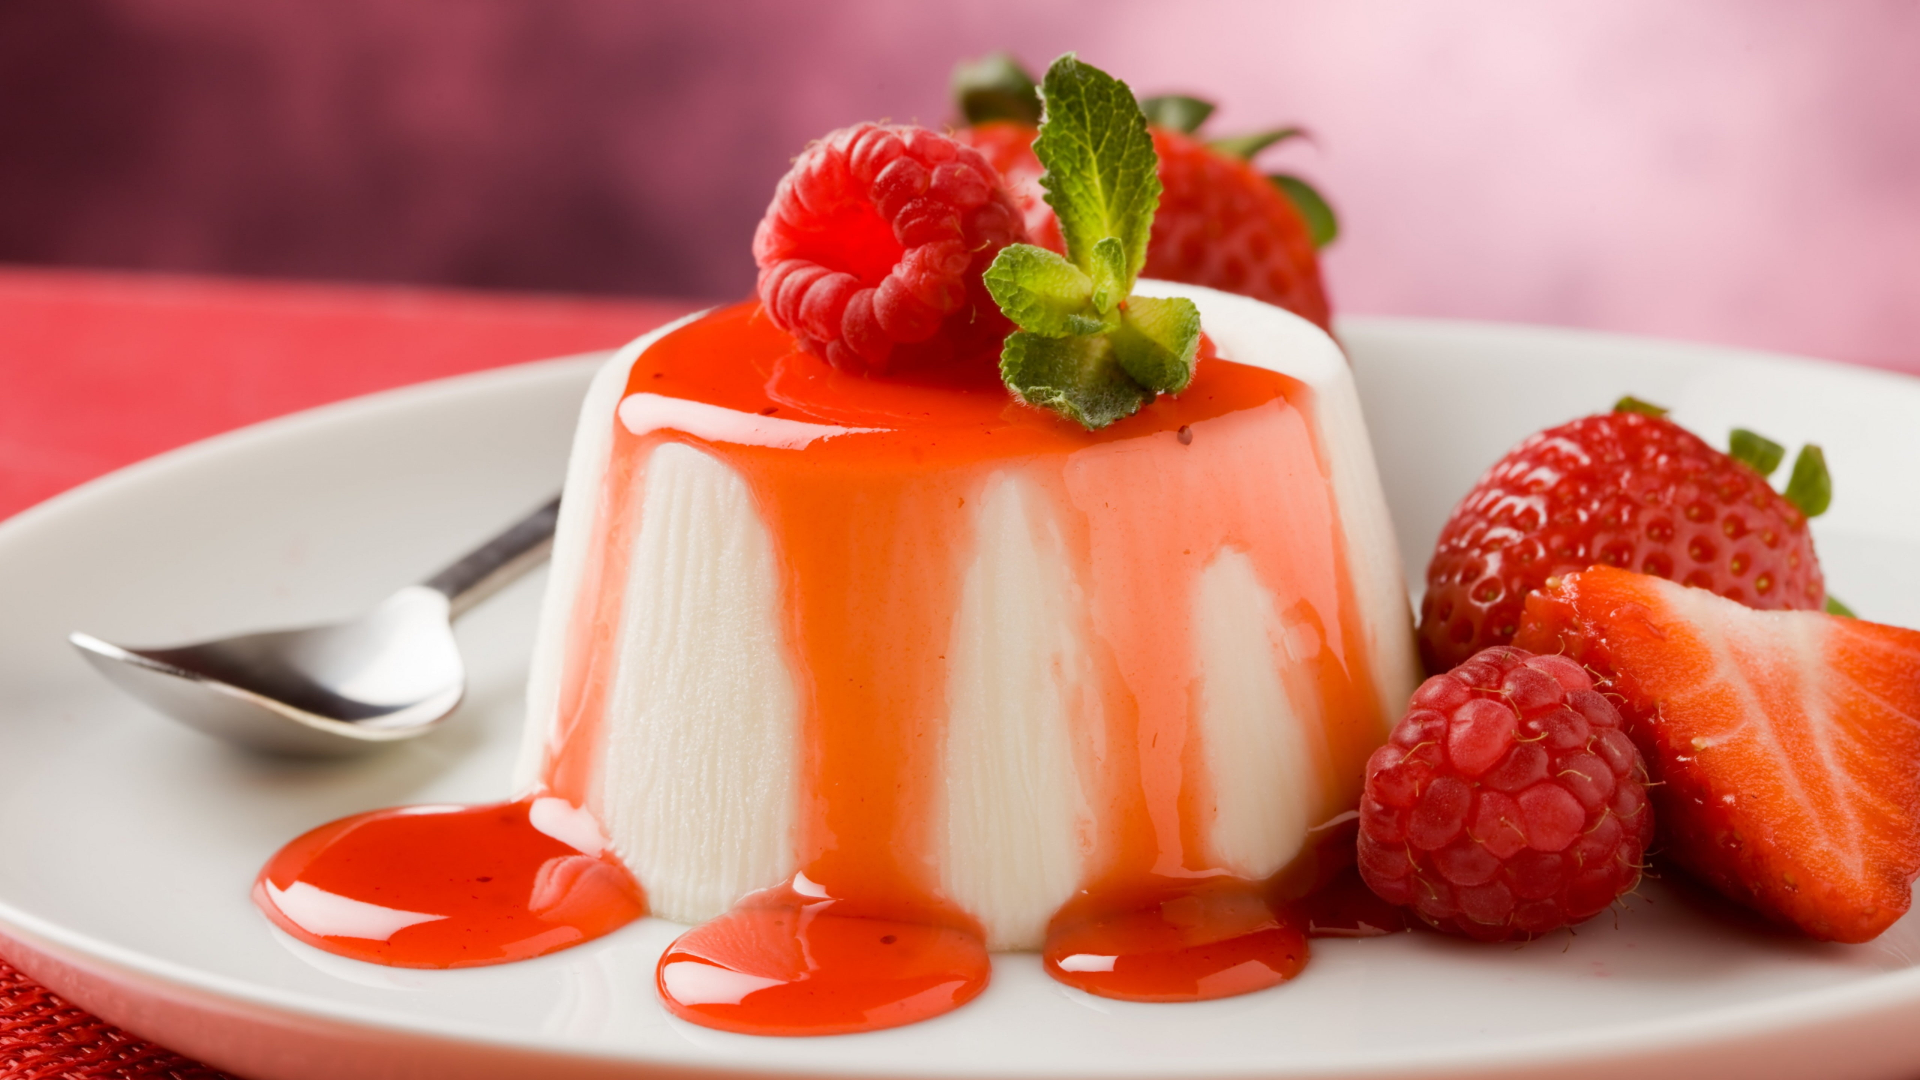 Italian Vanilla Panna Cotta Recipe Without Gelatin